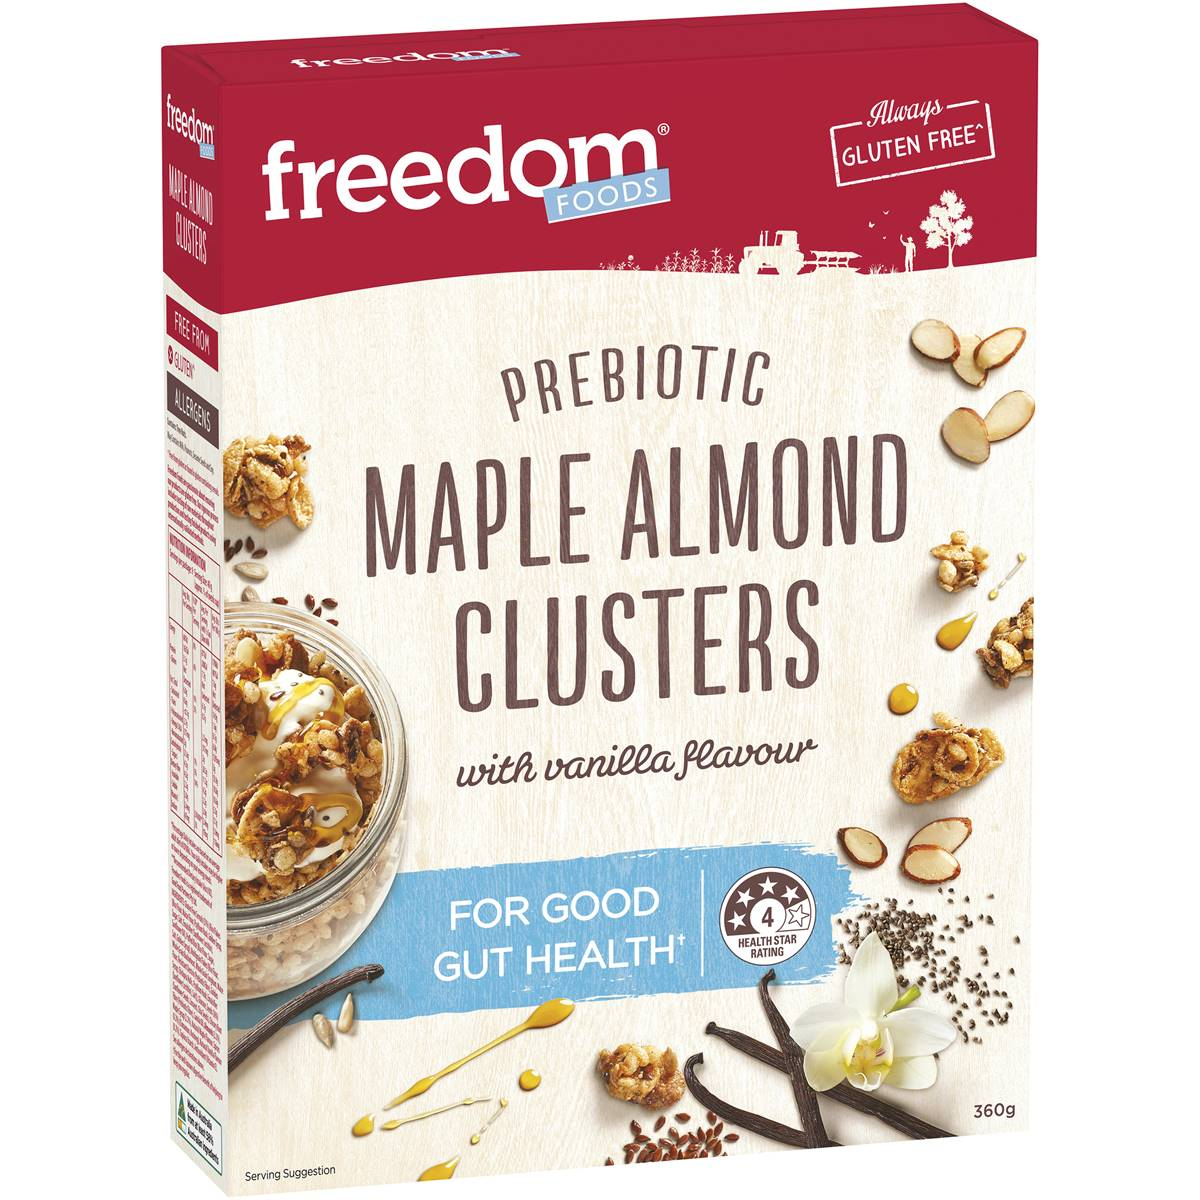 Freedom Foods Prebiotic Maple Almond Clusters